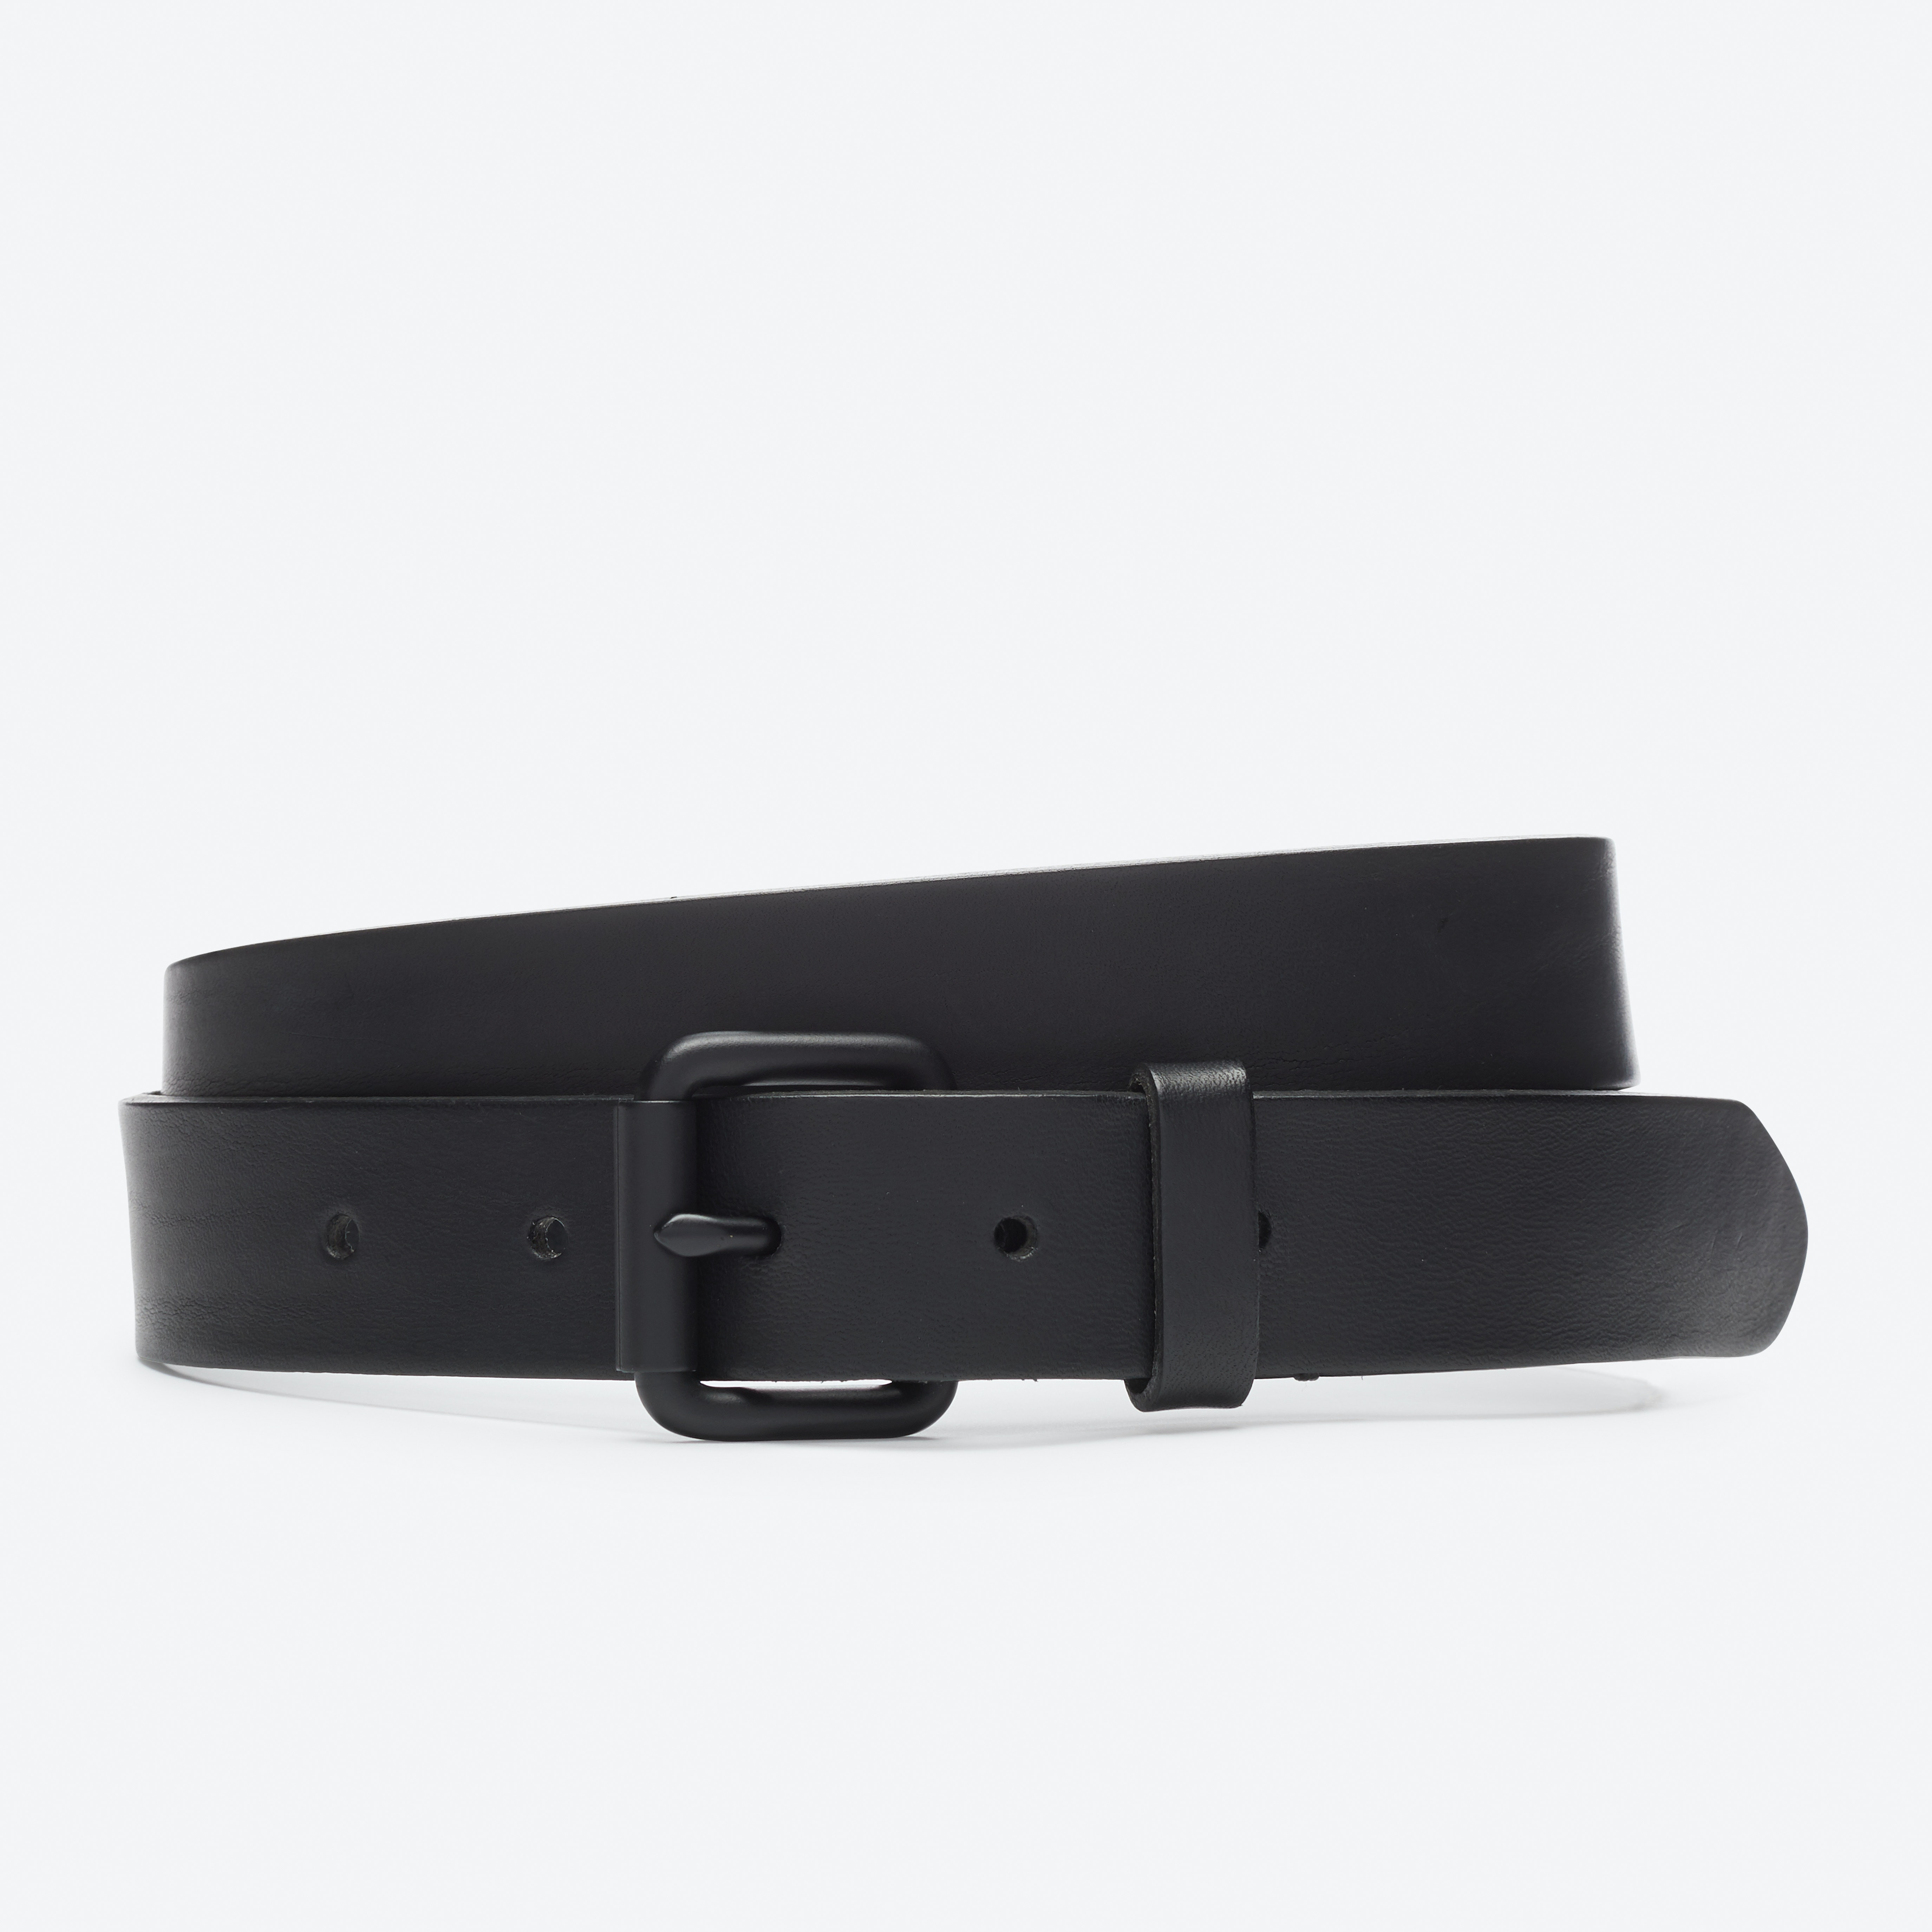 Monochrome Leather Belt